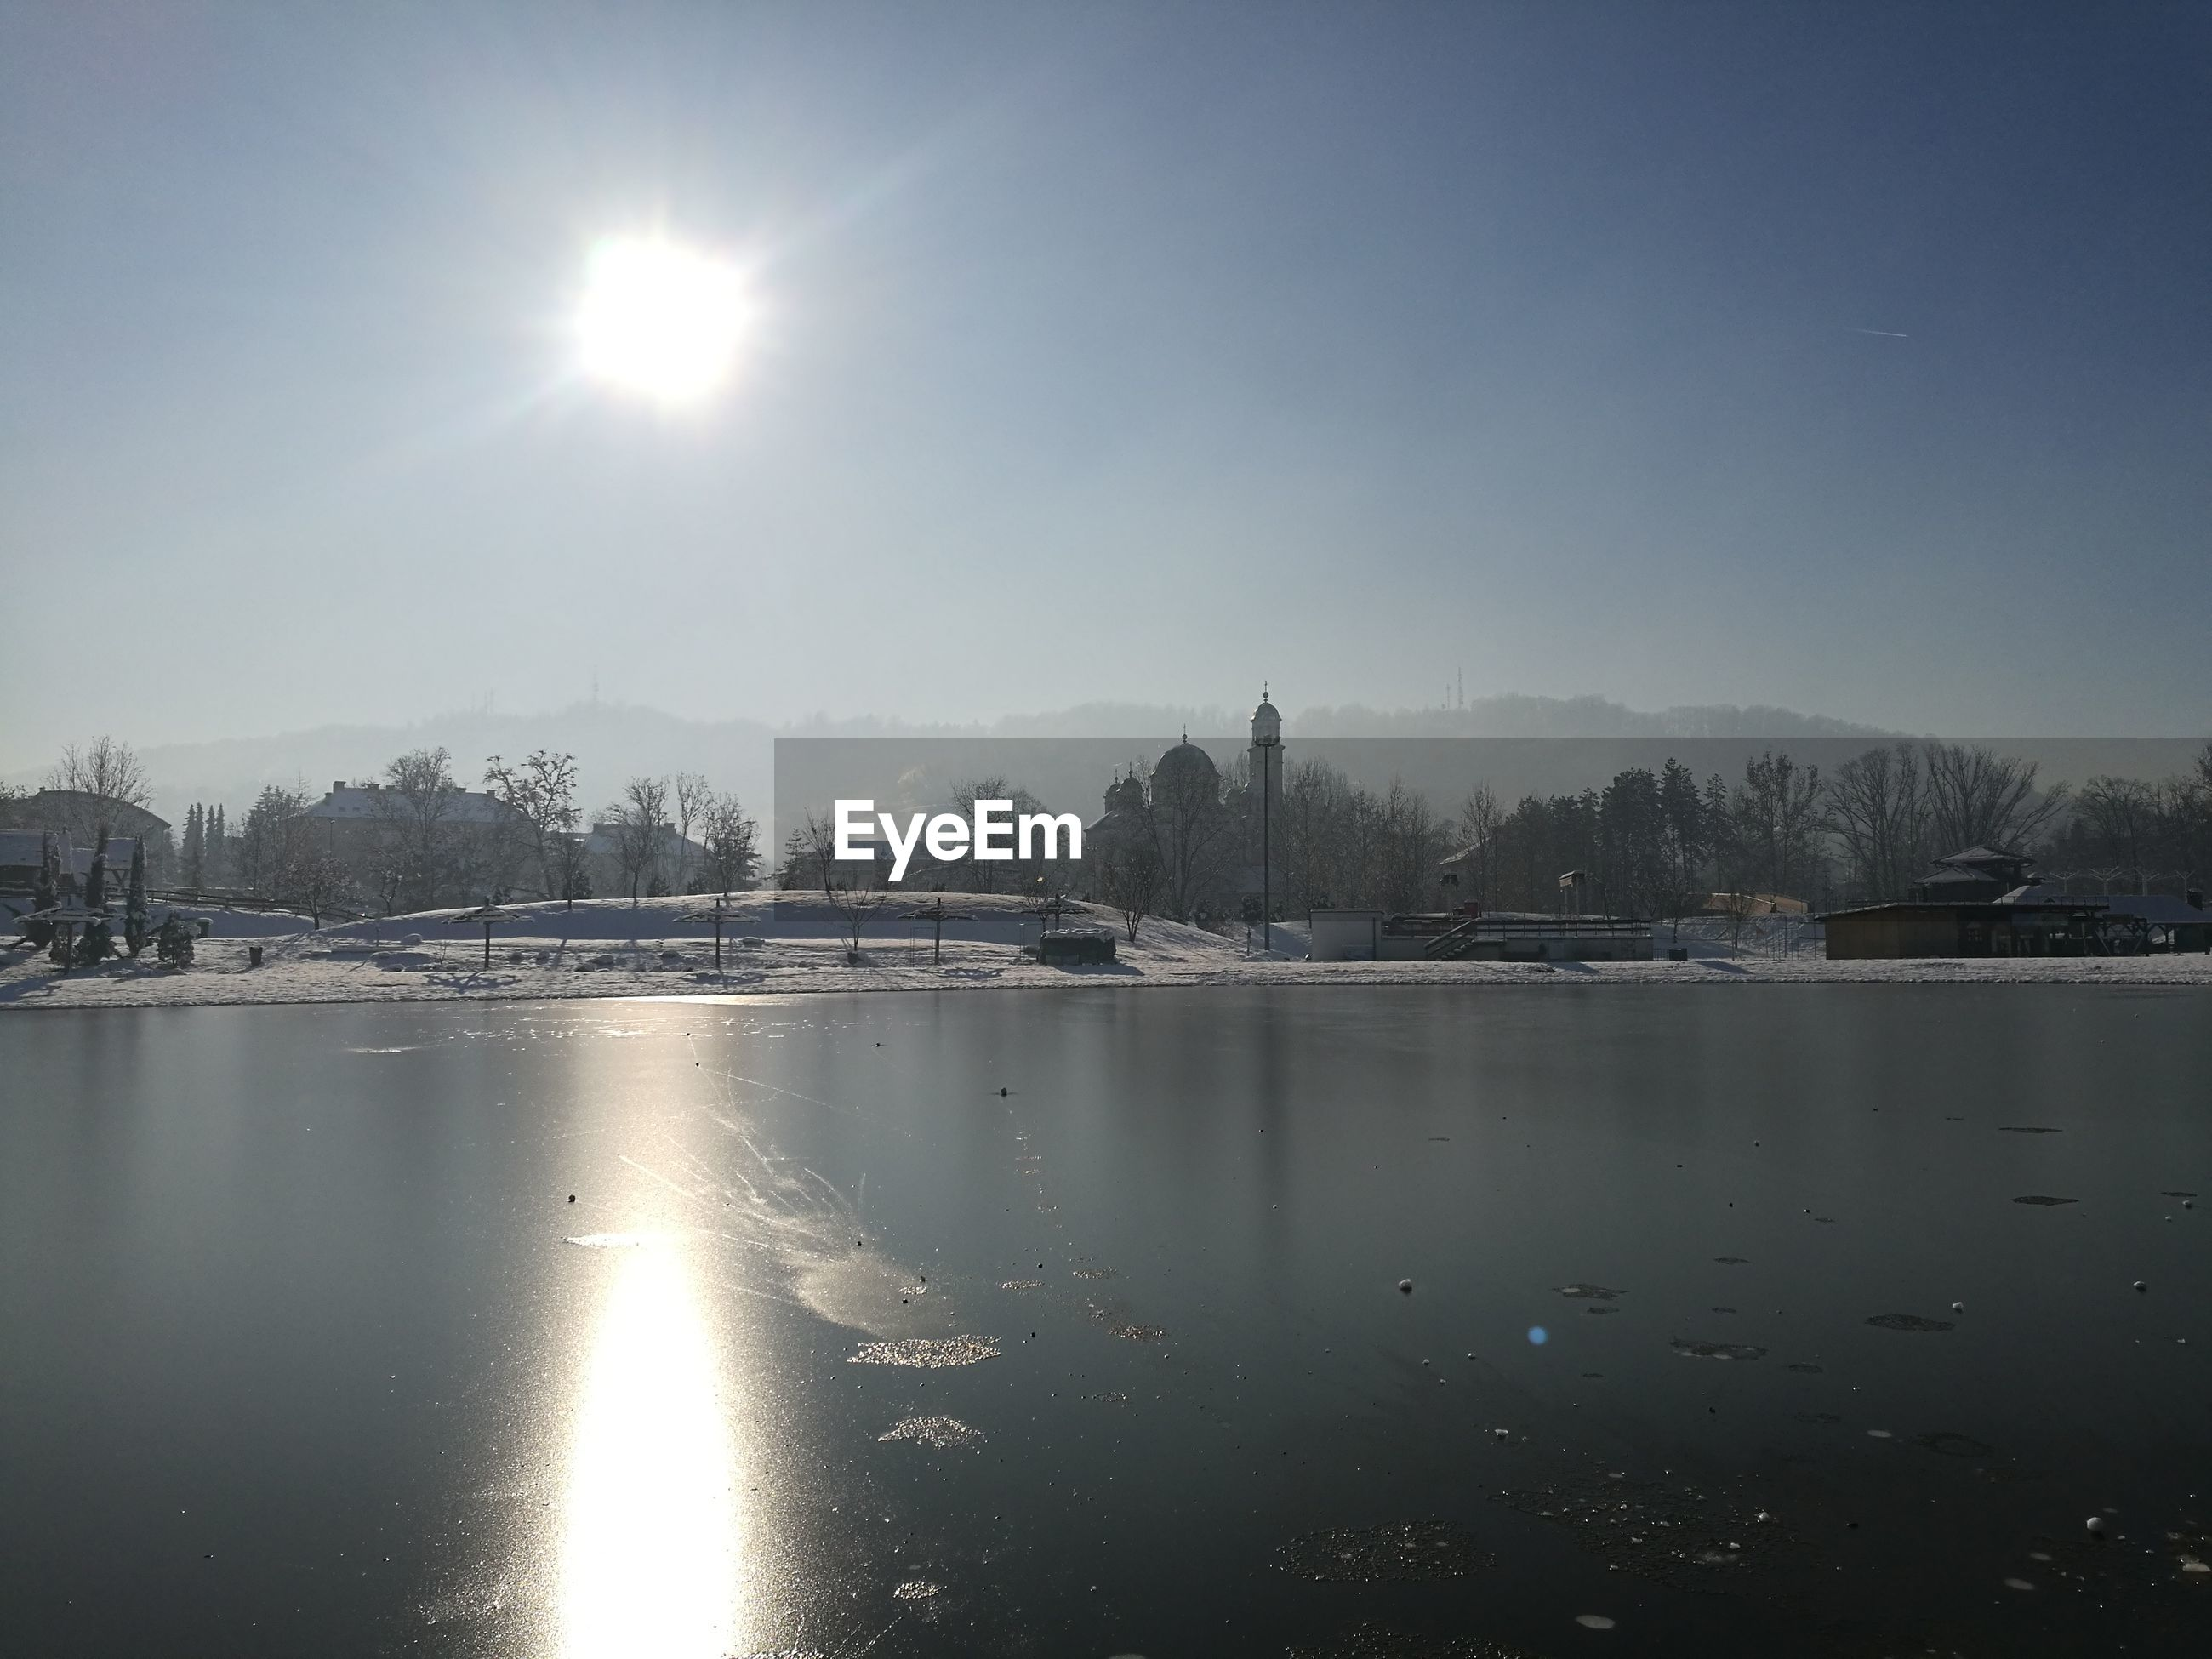 SCENIC VIEW OF LAKE AGAINST CLEAR SKY DURING WINTER